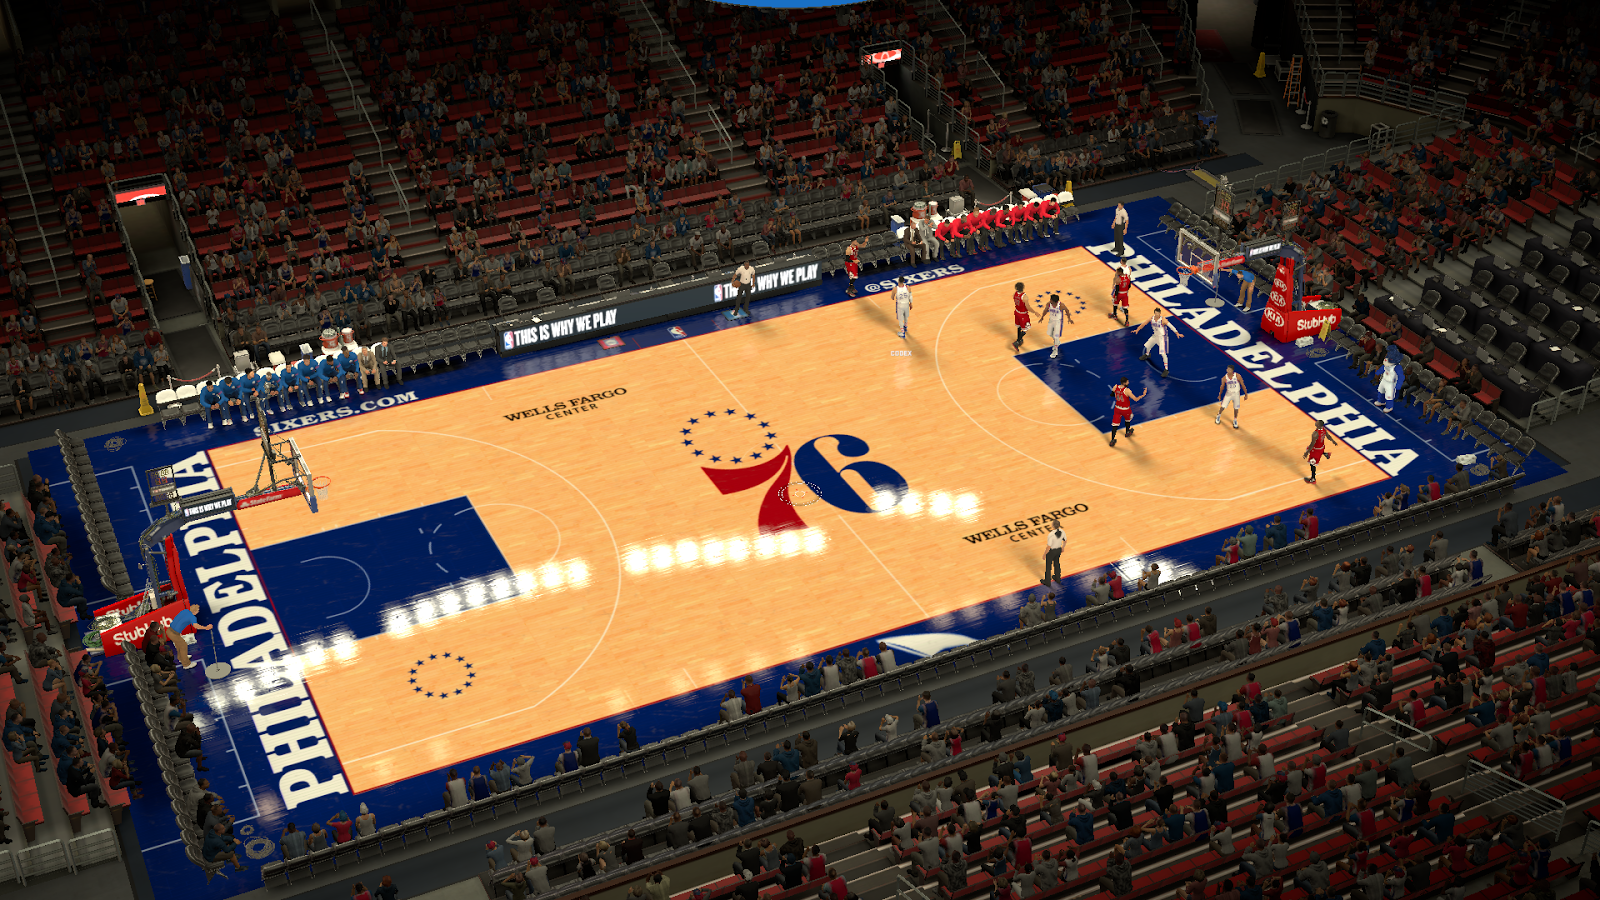 DNA Of Basketball | DNAOBB: NBA 2K17 Philadelphia 76ers Court 2017-2018 by stetep1616